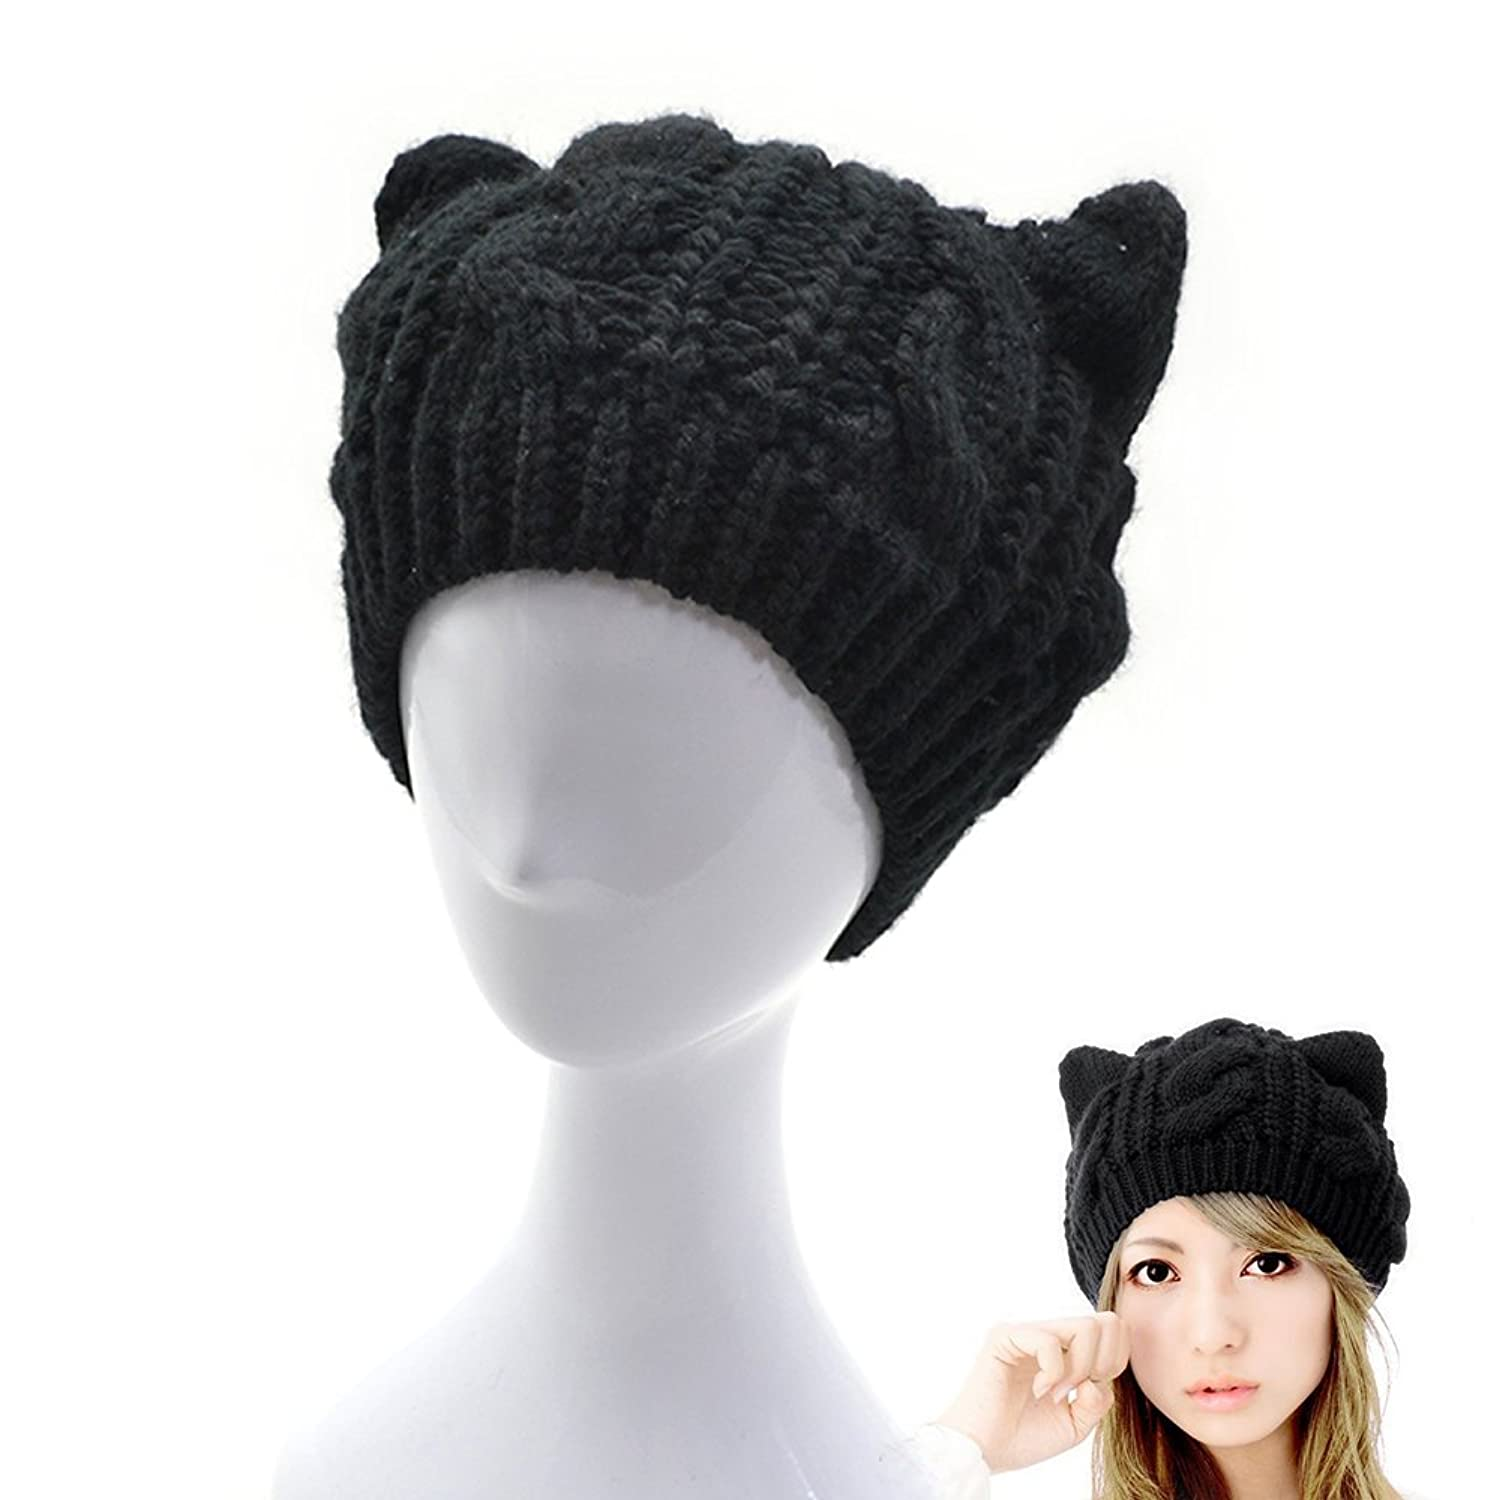 a6d1bd7fec9 AStorePlus Women Knit Hats Beanies